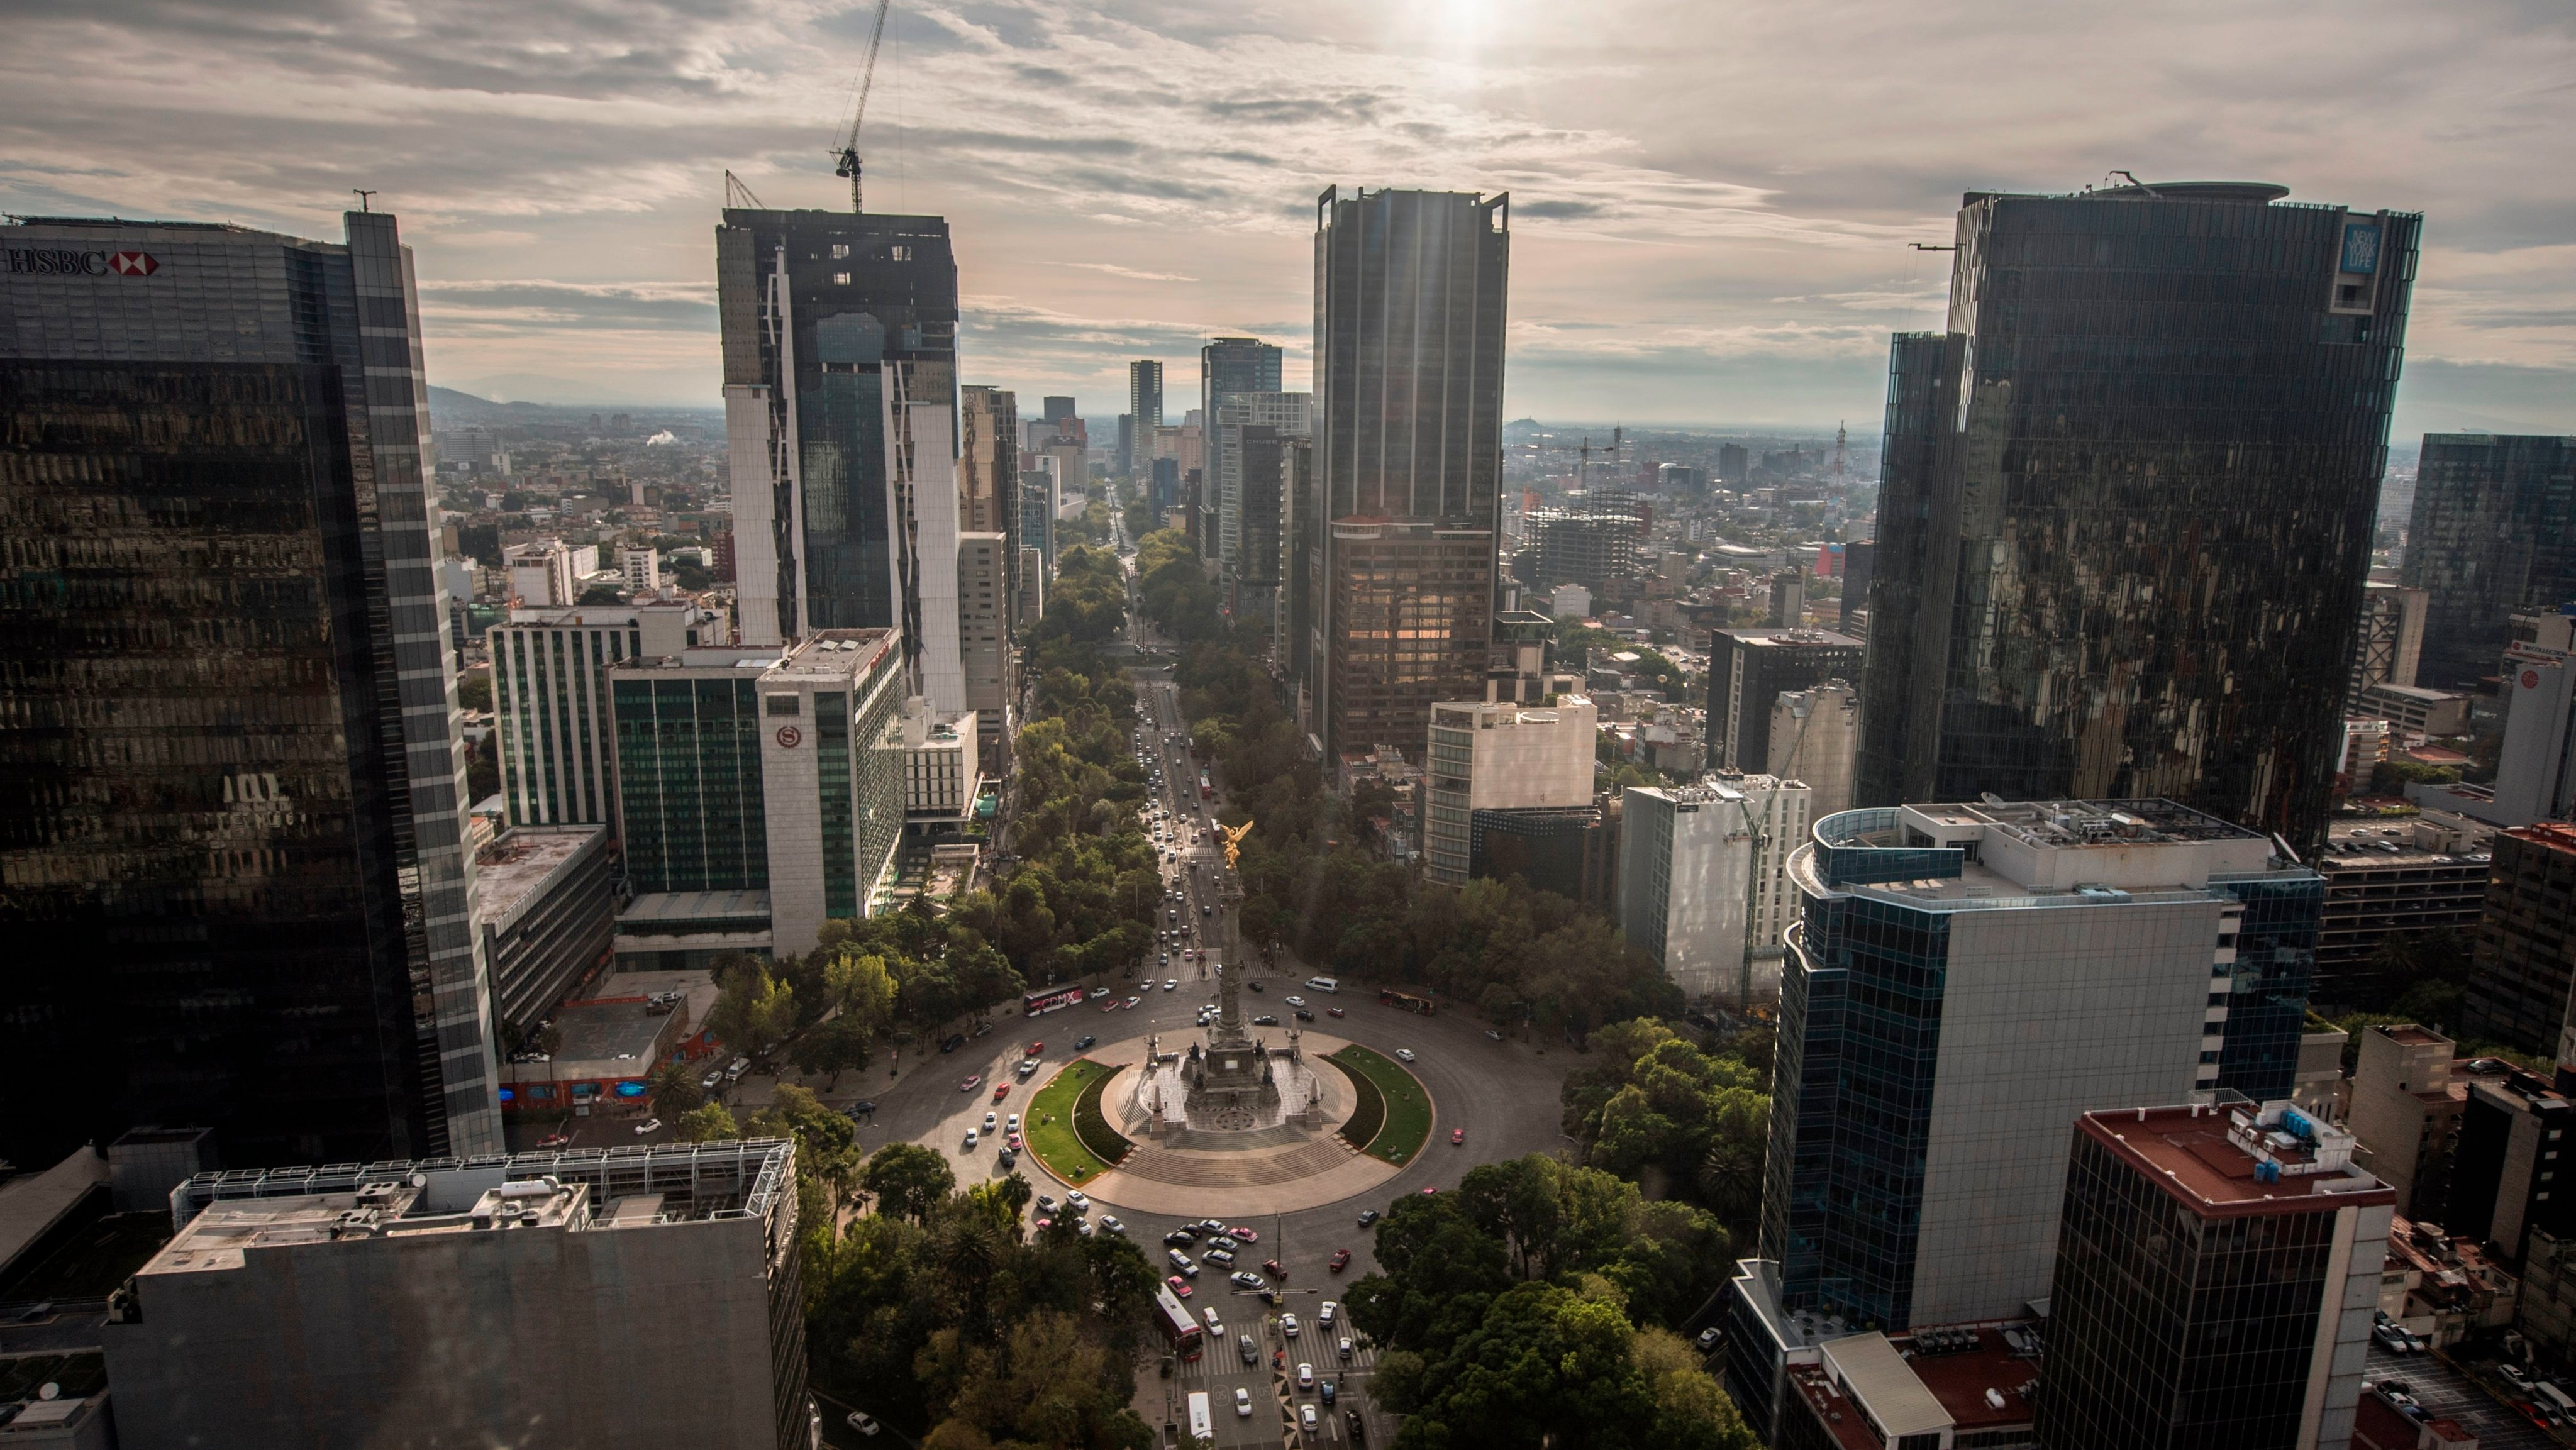 MEXICO-MEXICO CITY-CITY-ANGEL OF INDEPENDENCE